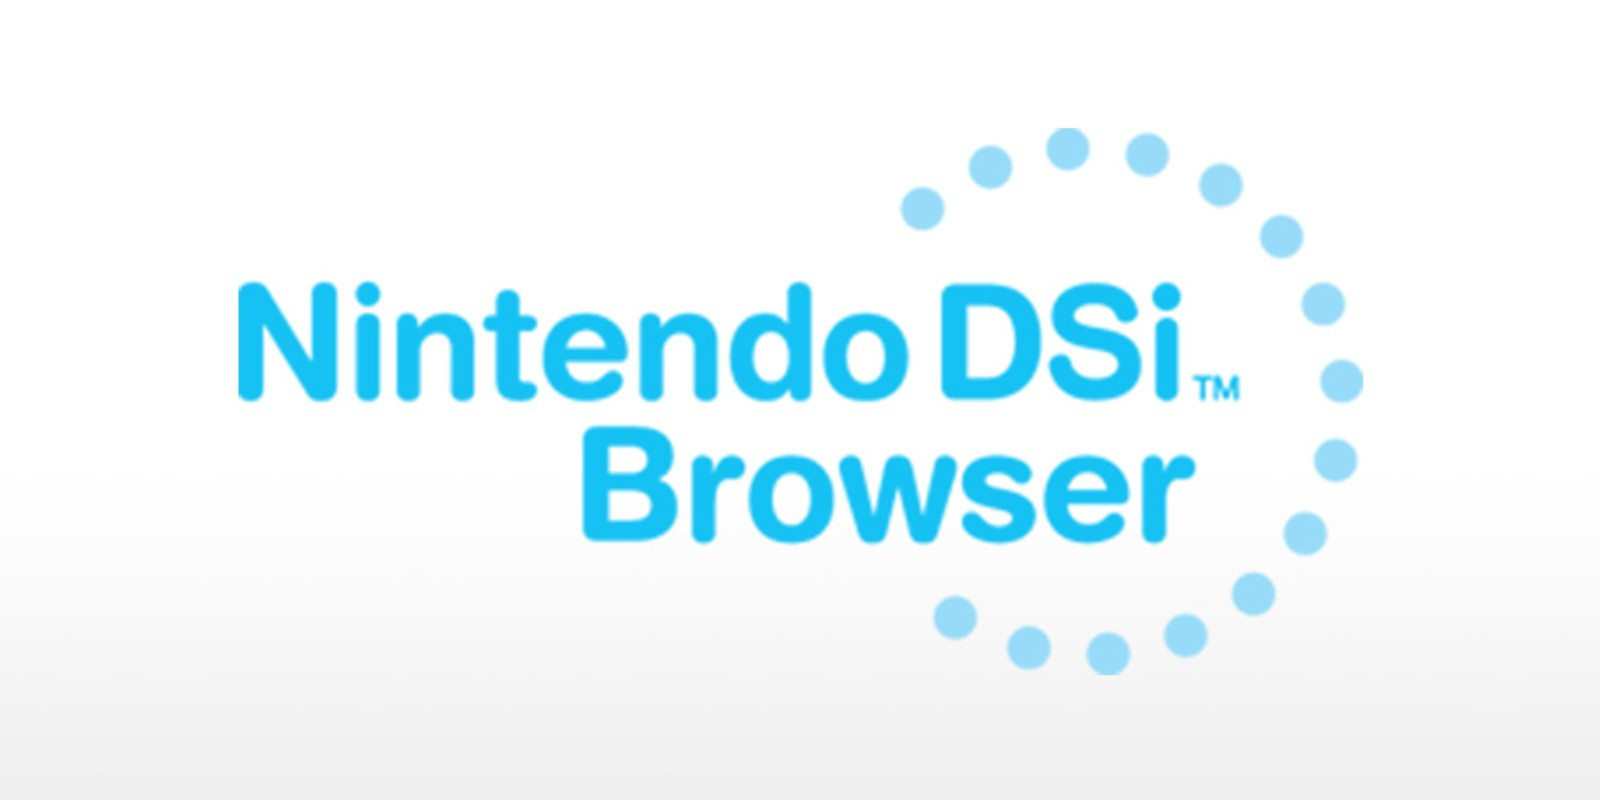 Nintendo DSi Browser